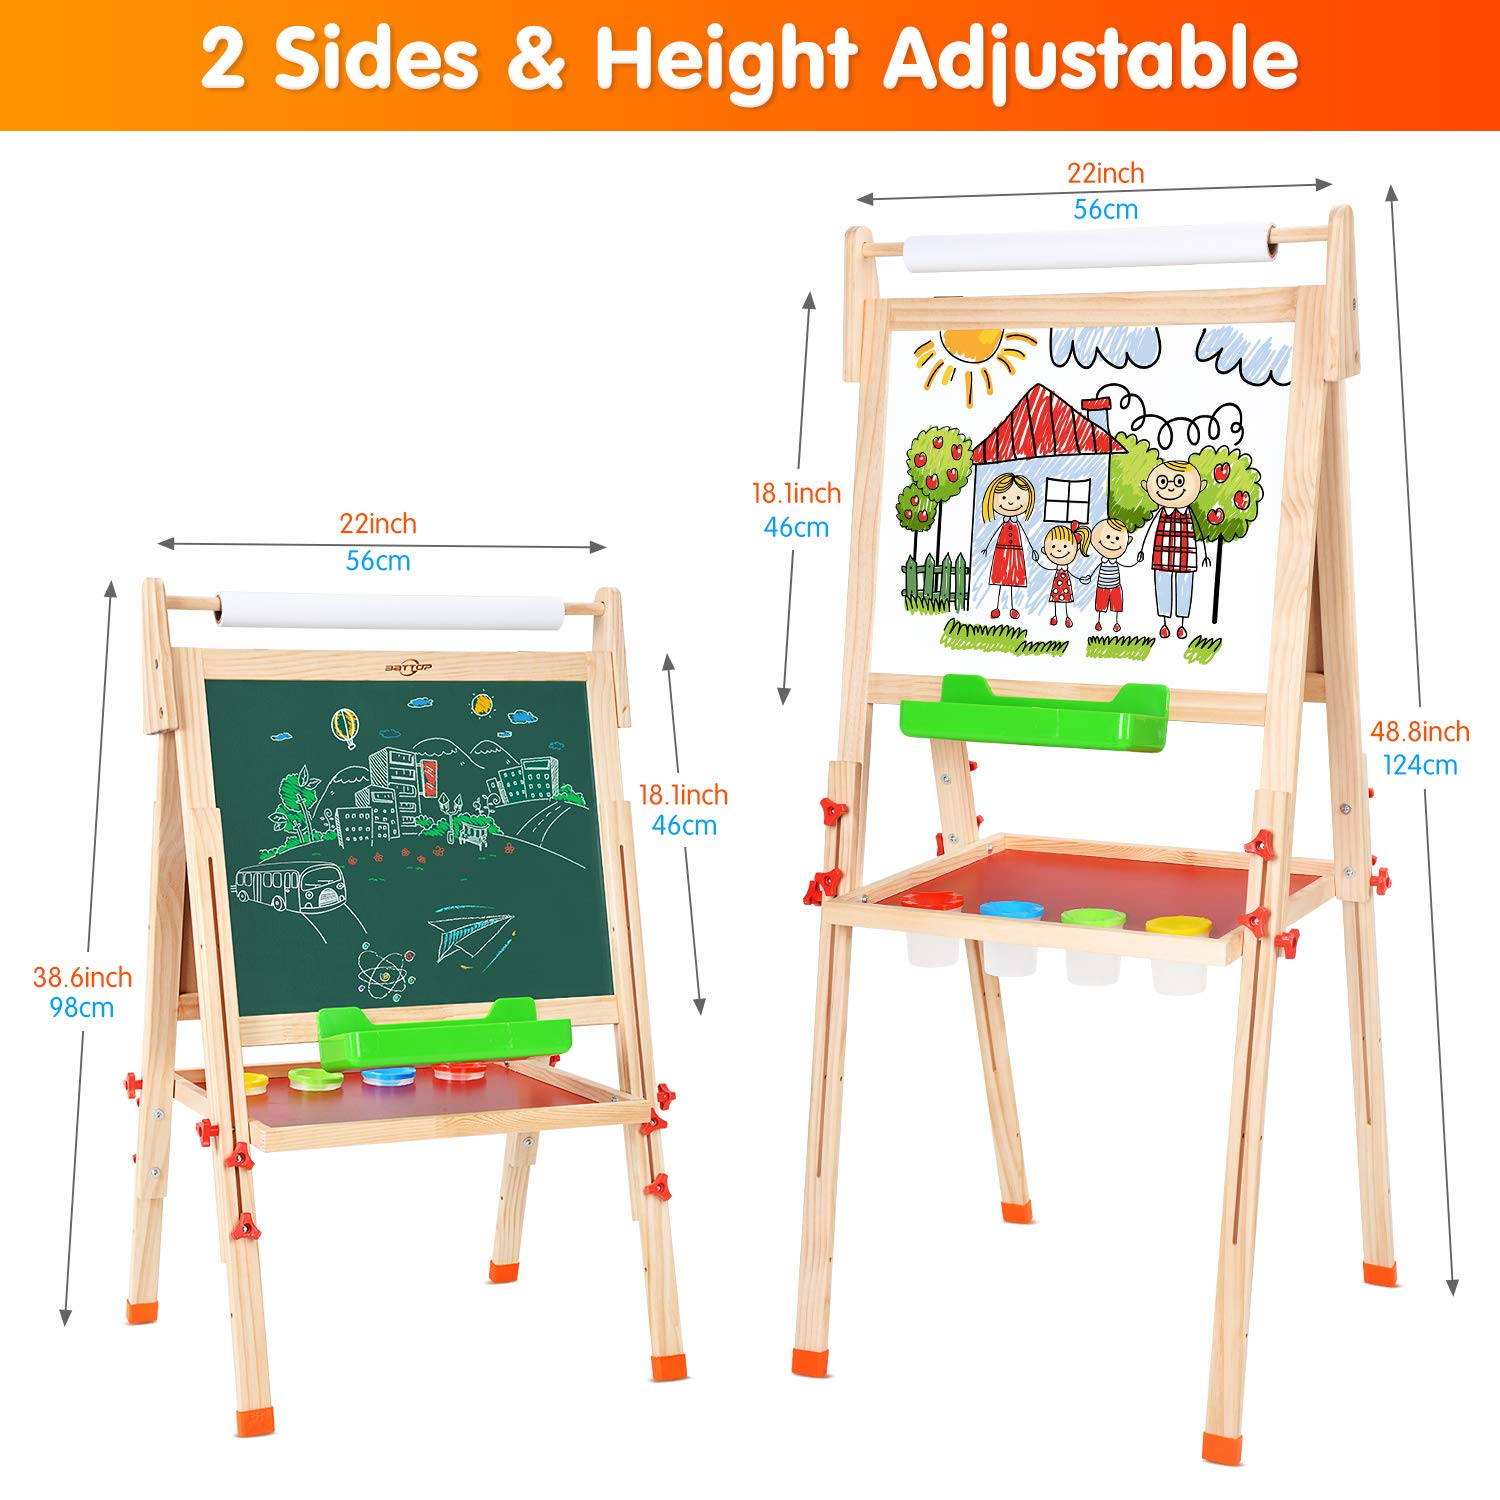 BATTOP Two-sided Height Adjustable Drawing Easel Folding Blackboard with Magnetic Alphabets and Numbers